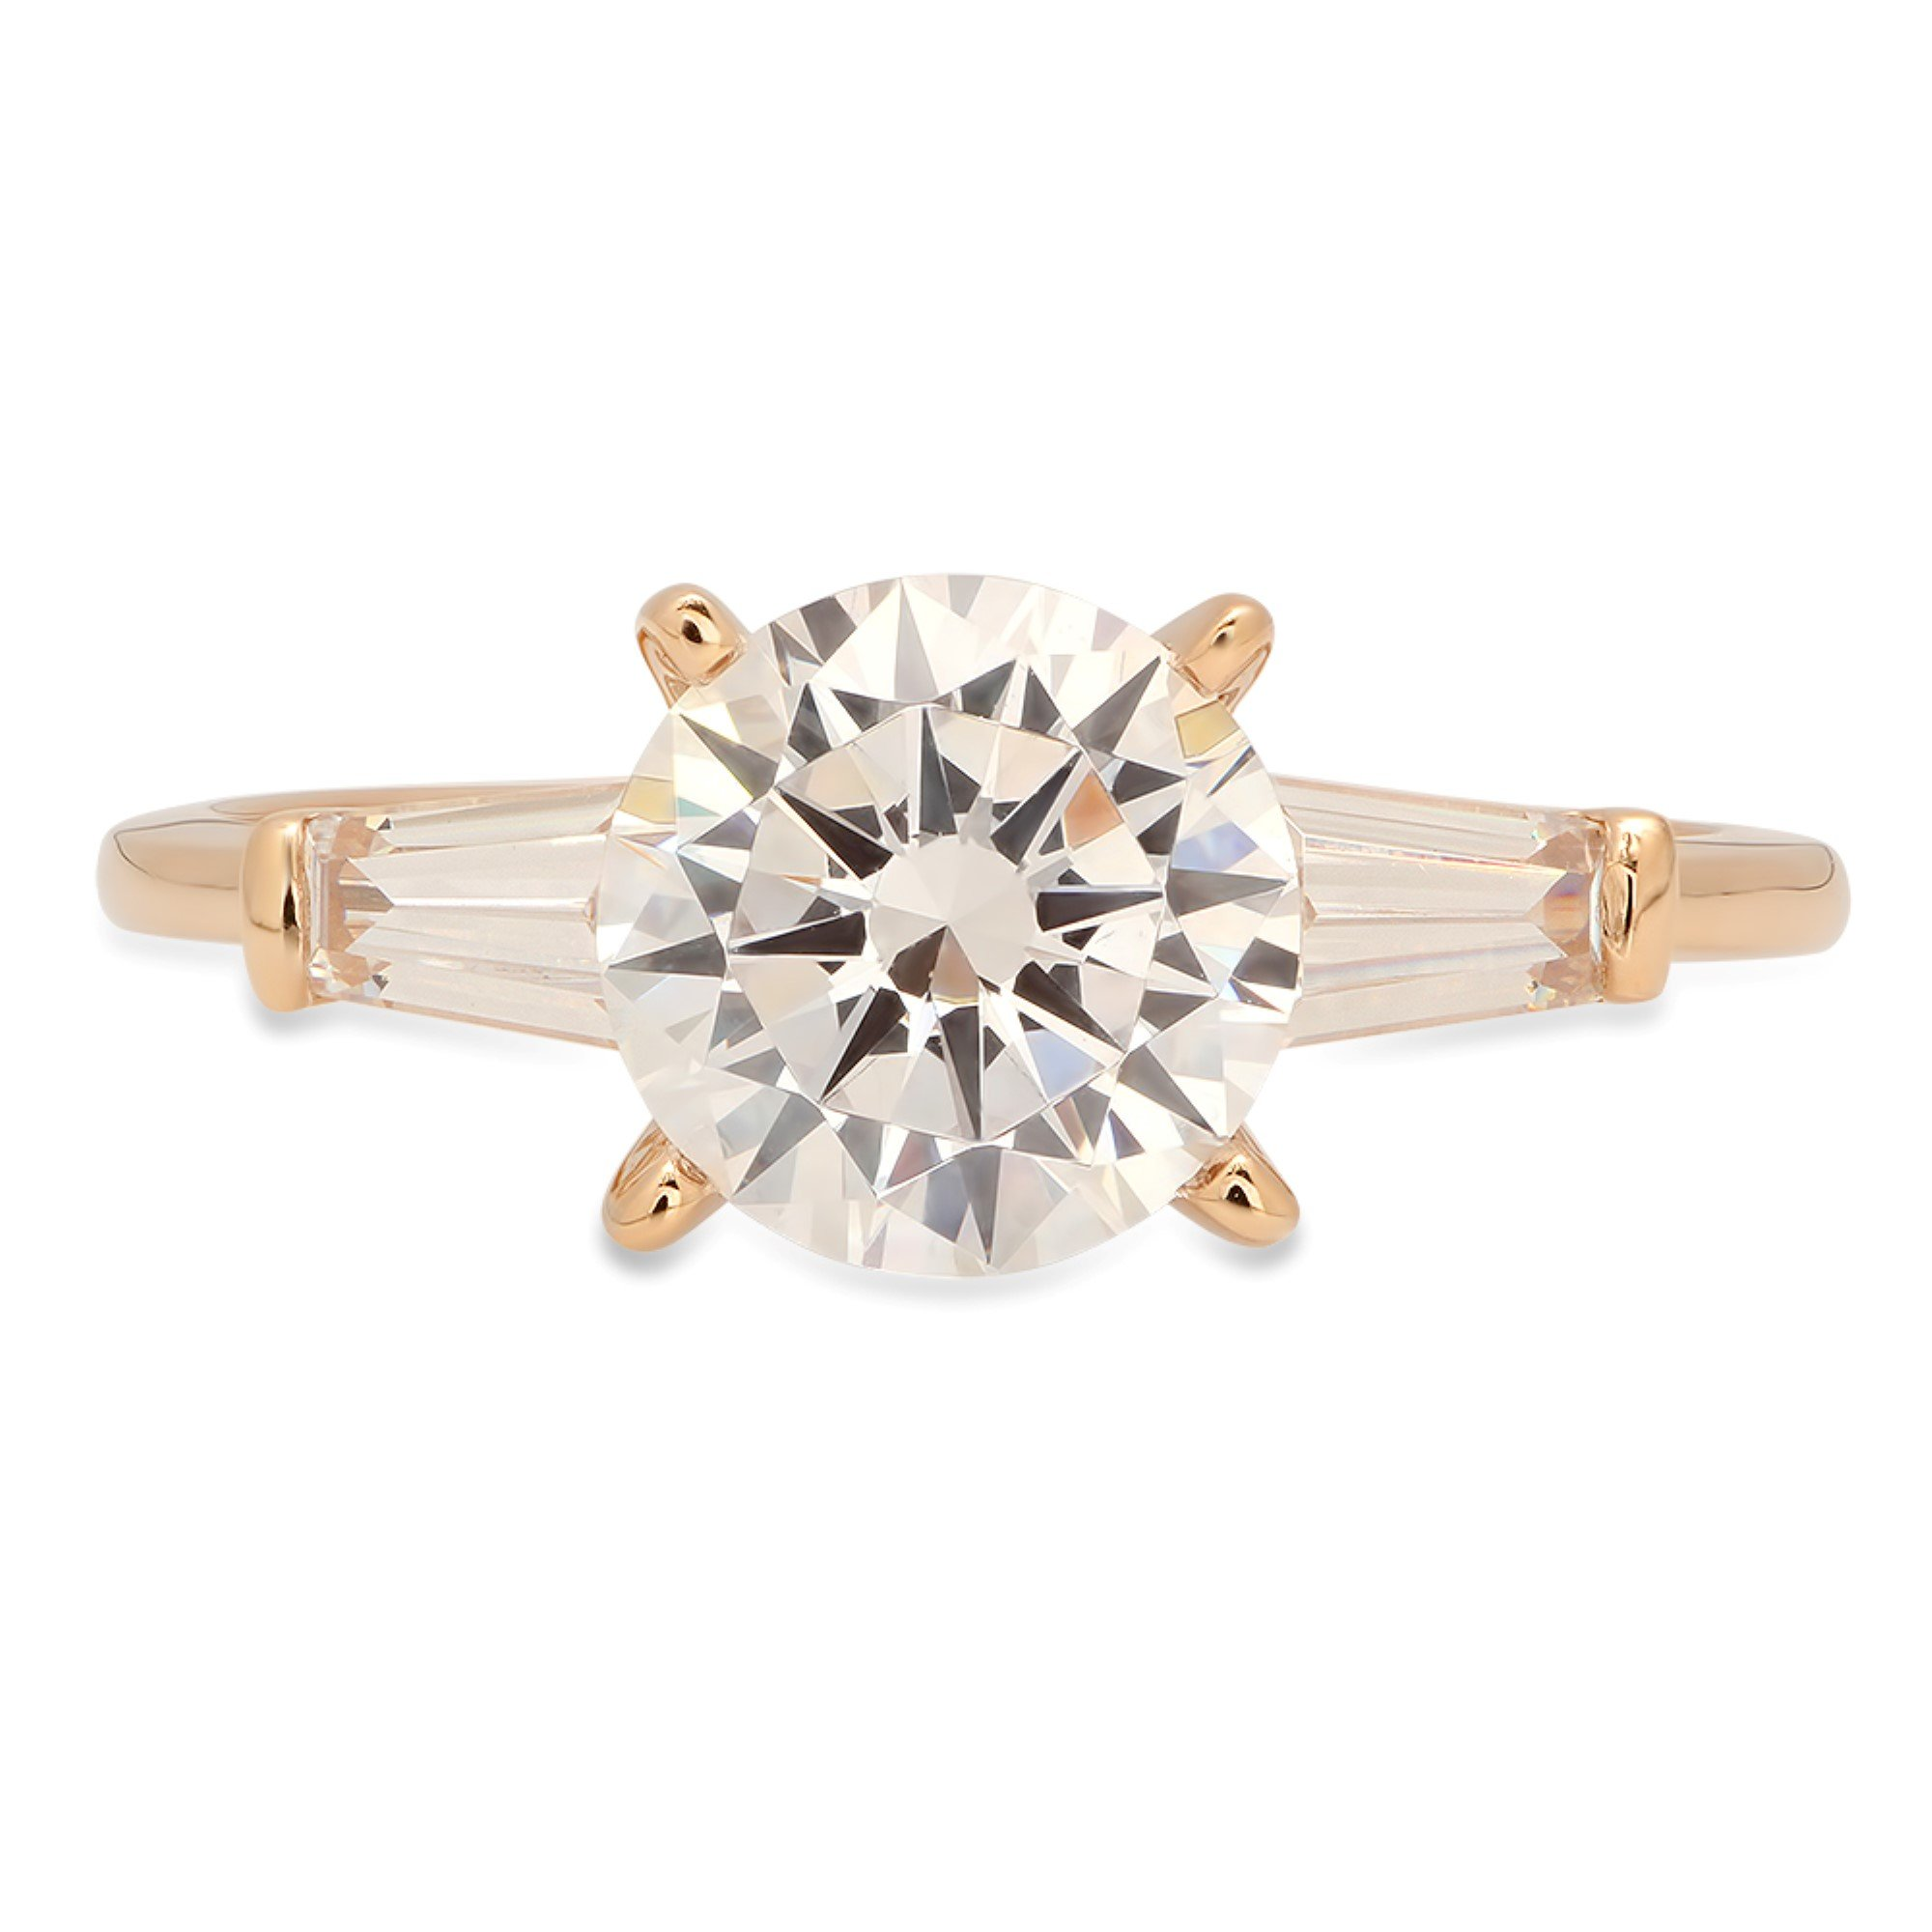 Brilliant Round Baguette Cut Solitaire 3 Stone Statement Engagement Wedding Anniversary Promise Bridal Petite Ring Solid 14K Yellow Gold for Women 1.8ct, 10